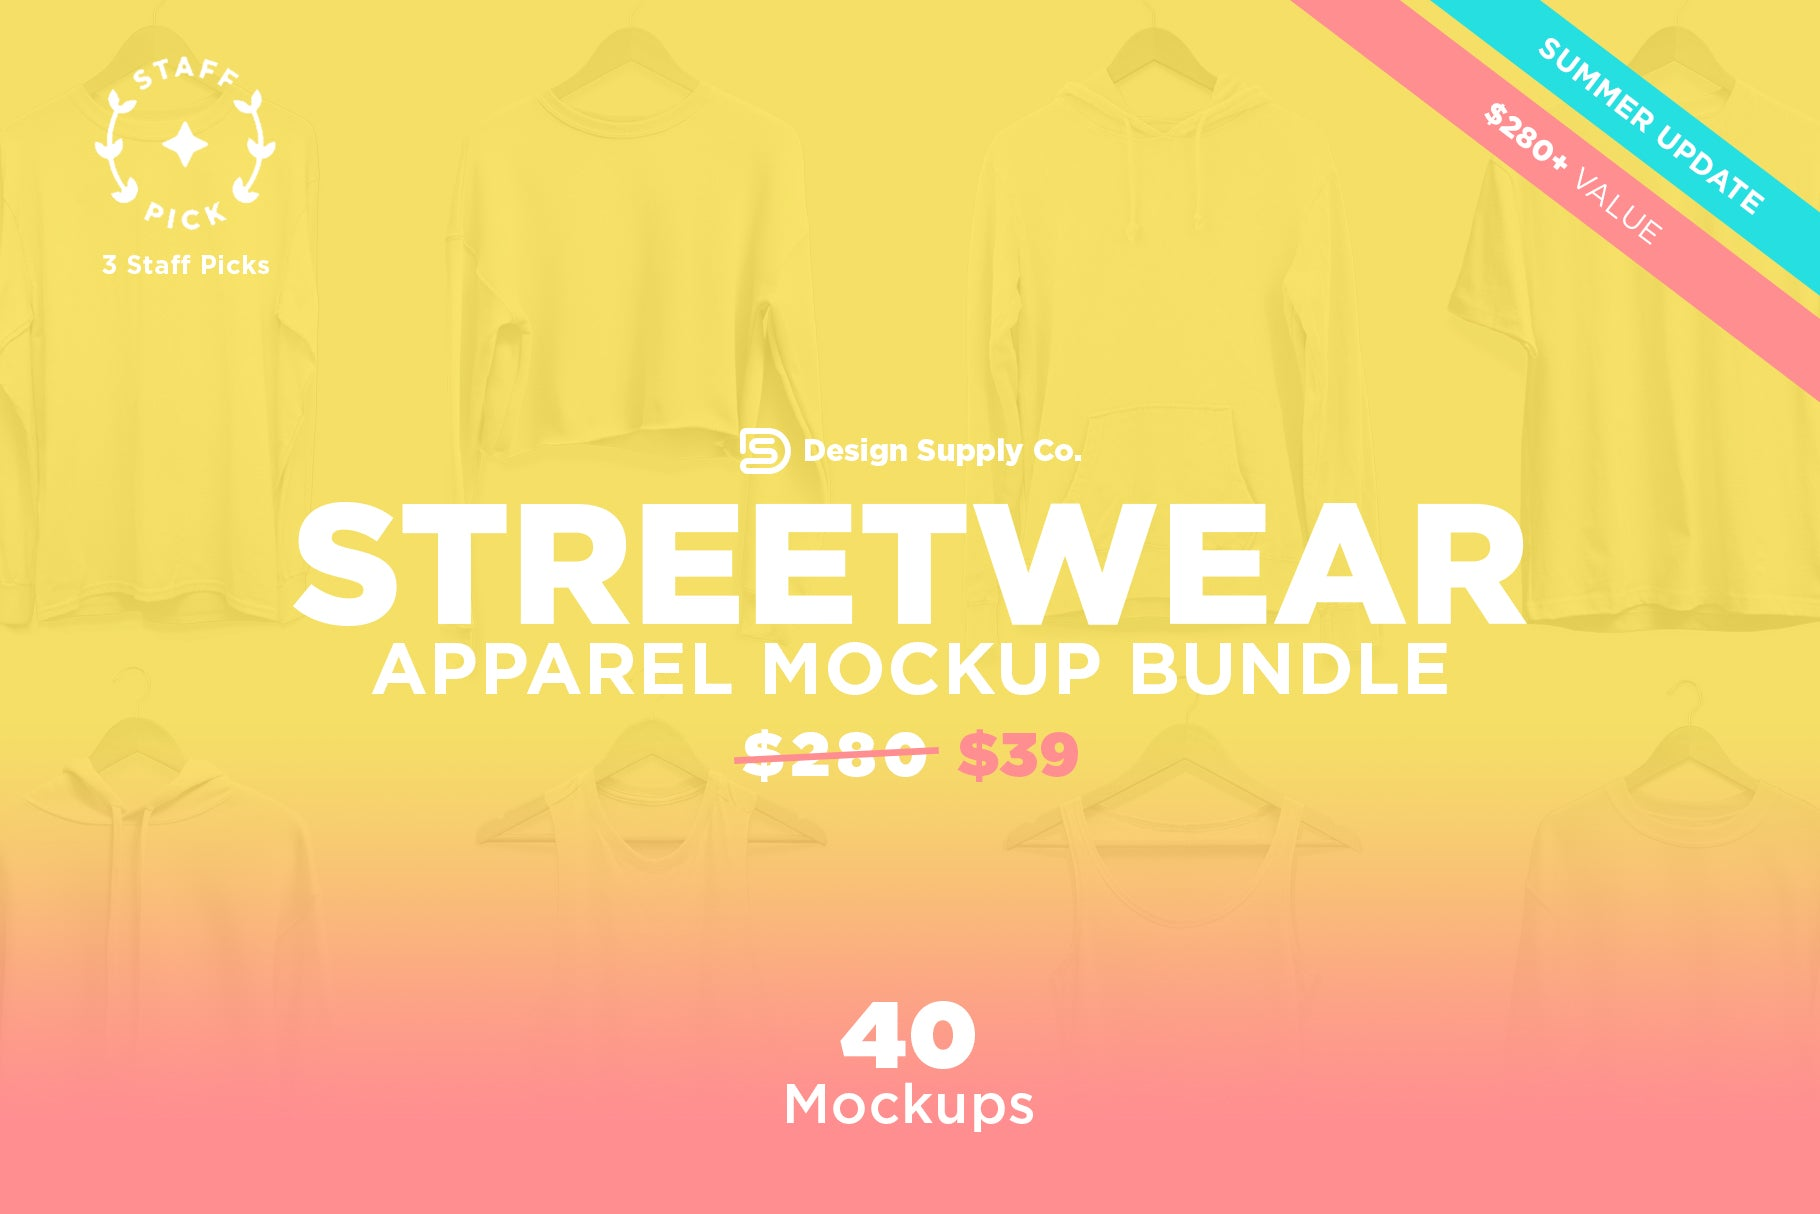 Streetwear Apparel Mockup Bundle